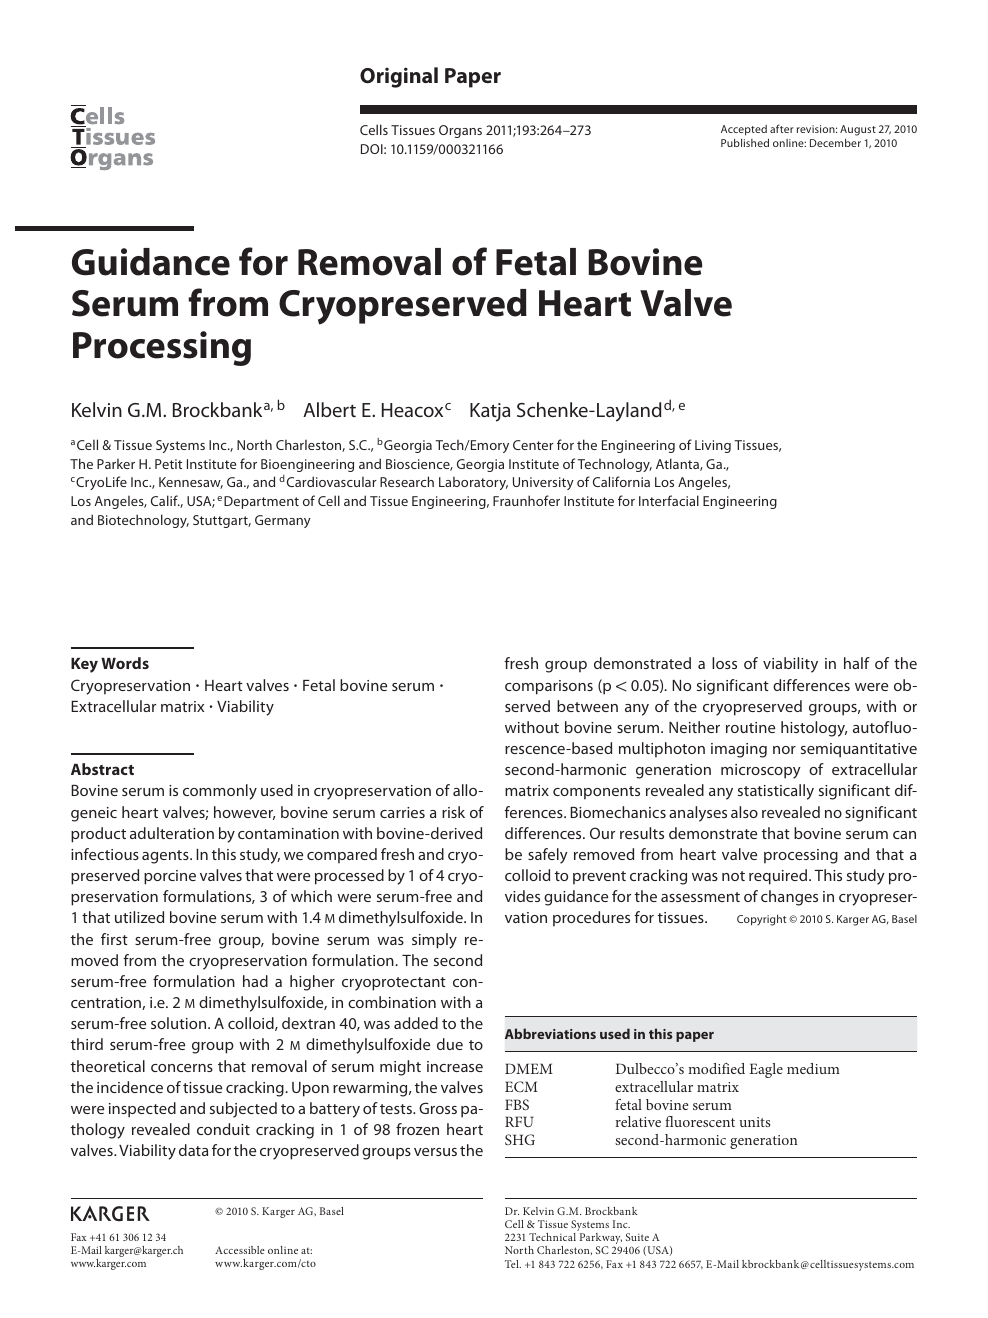 Guidance for Removal of Fetal Bovine Serum from Cryopreserved ...